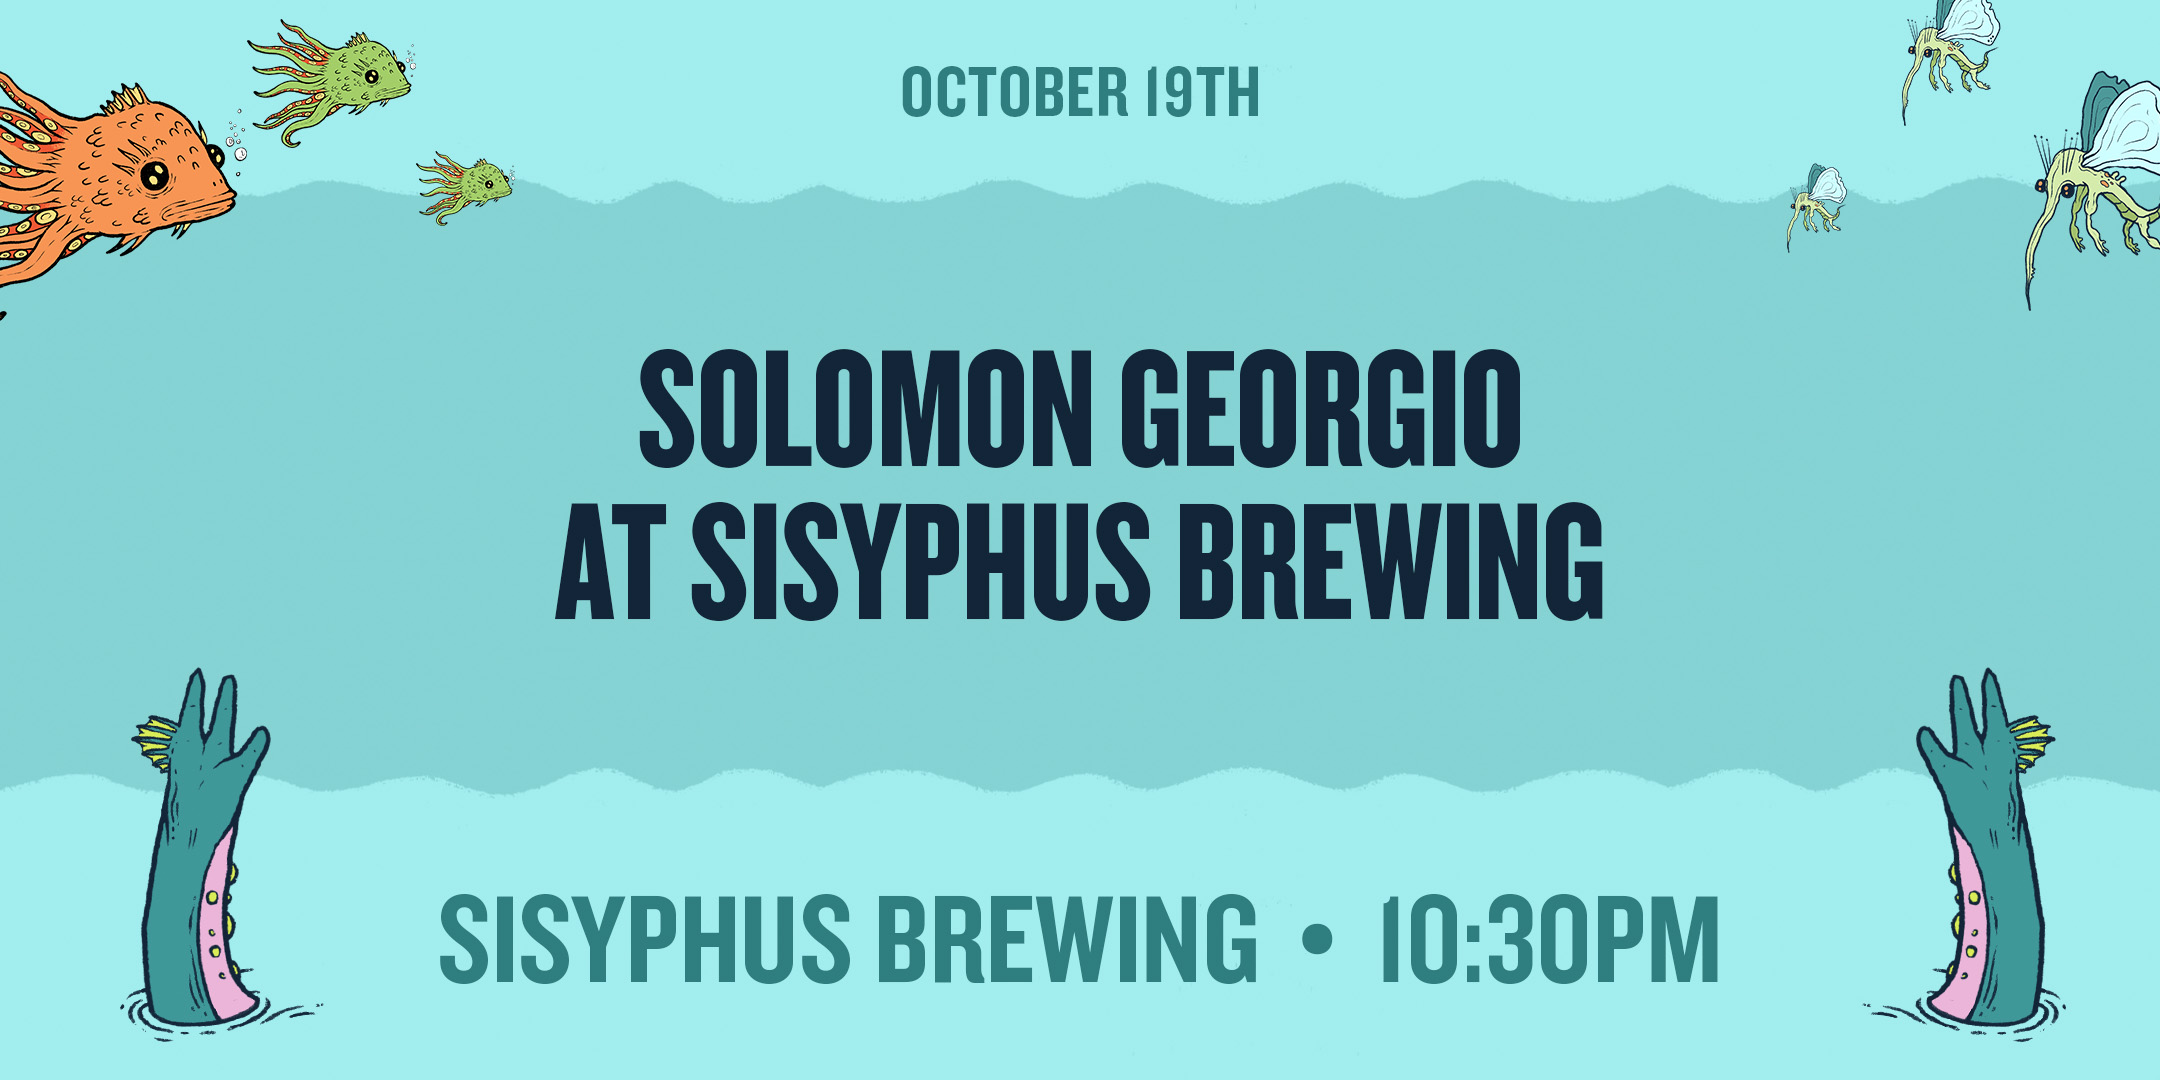 OCT19-Solomon Georgio at Sisyphus.jpg